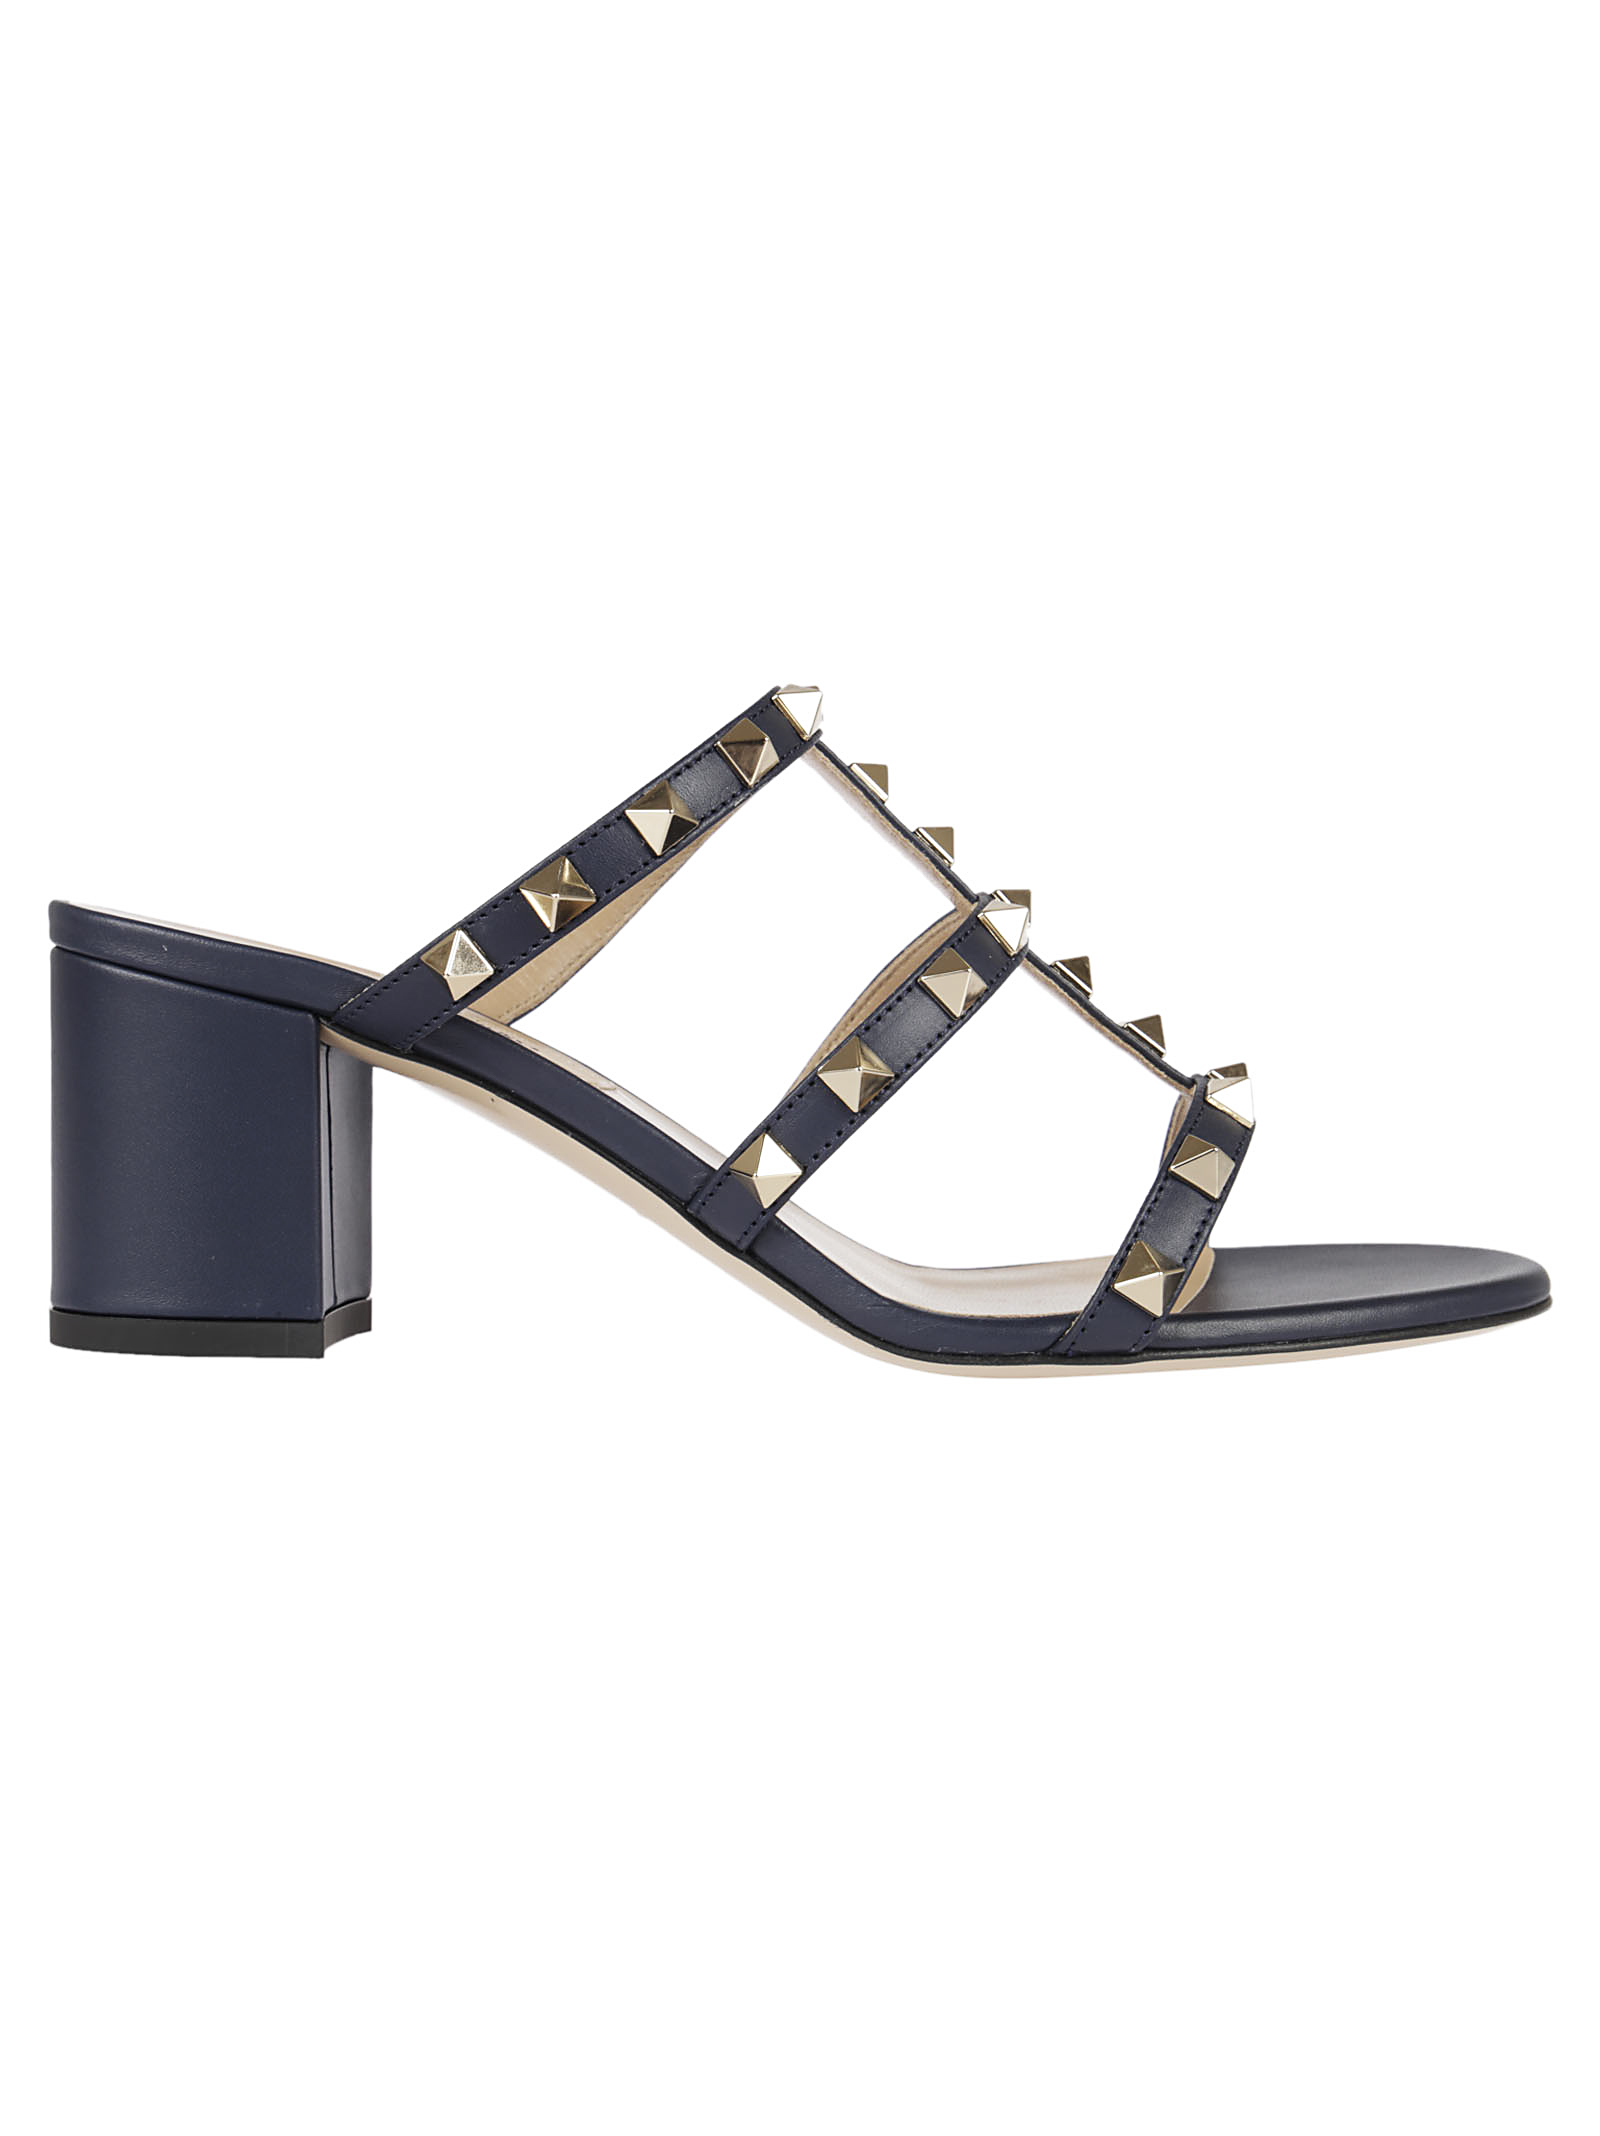 Valentino Garavani Rockstud Leather Block Heel Slides